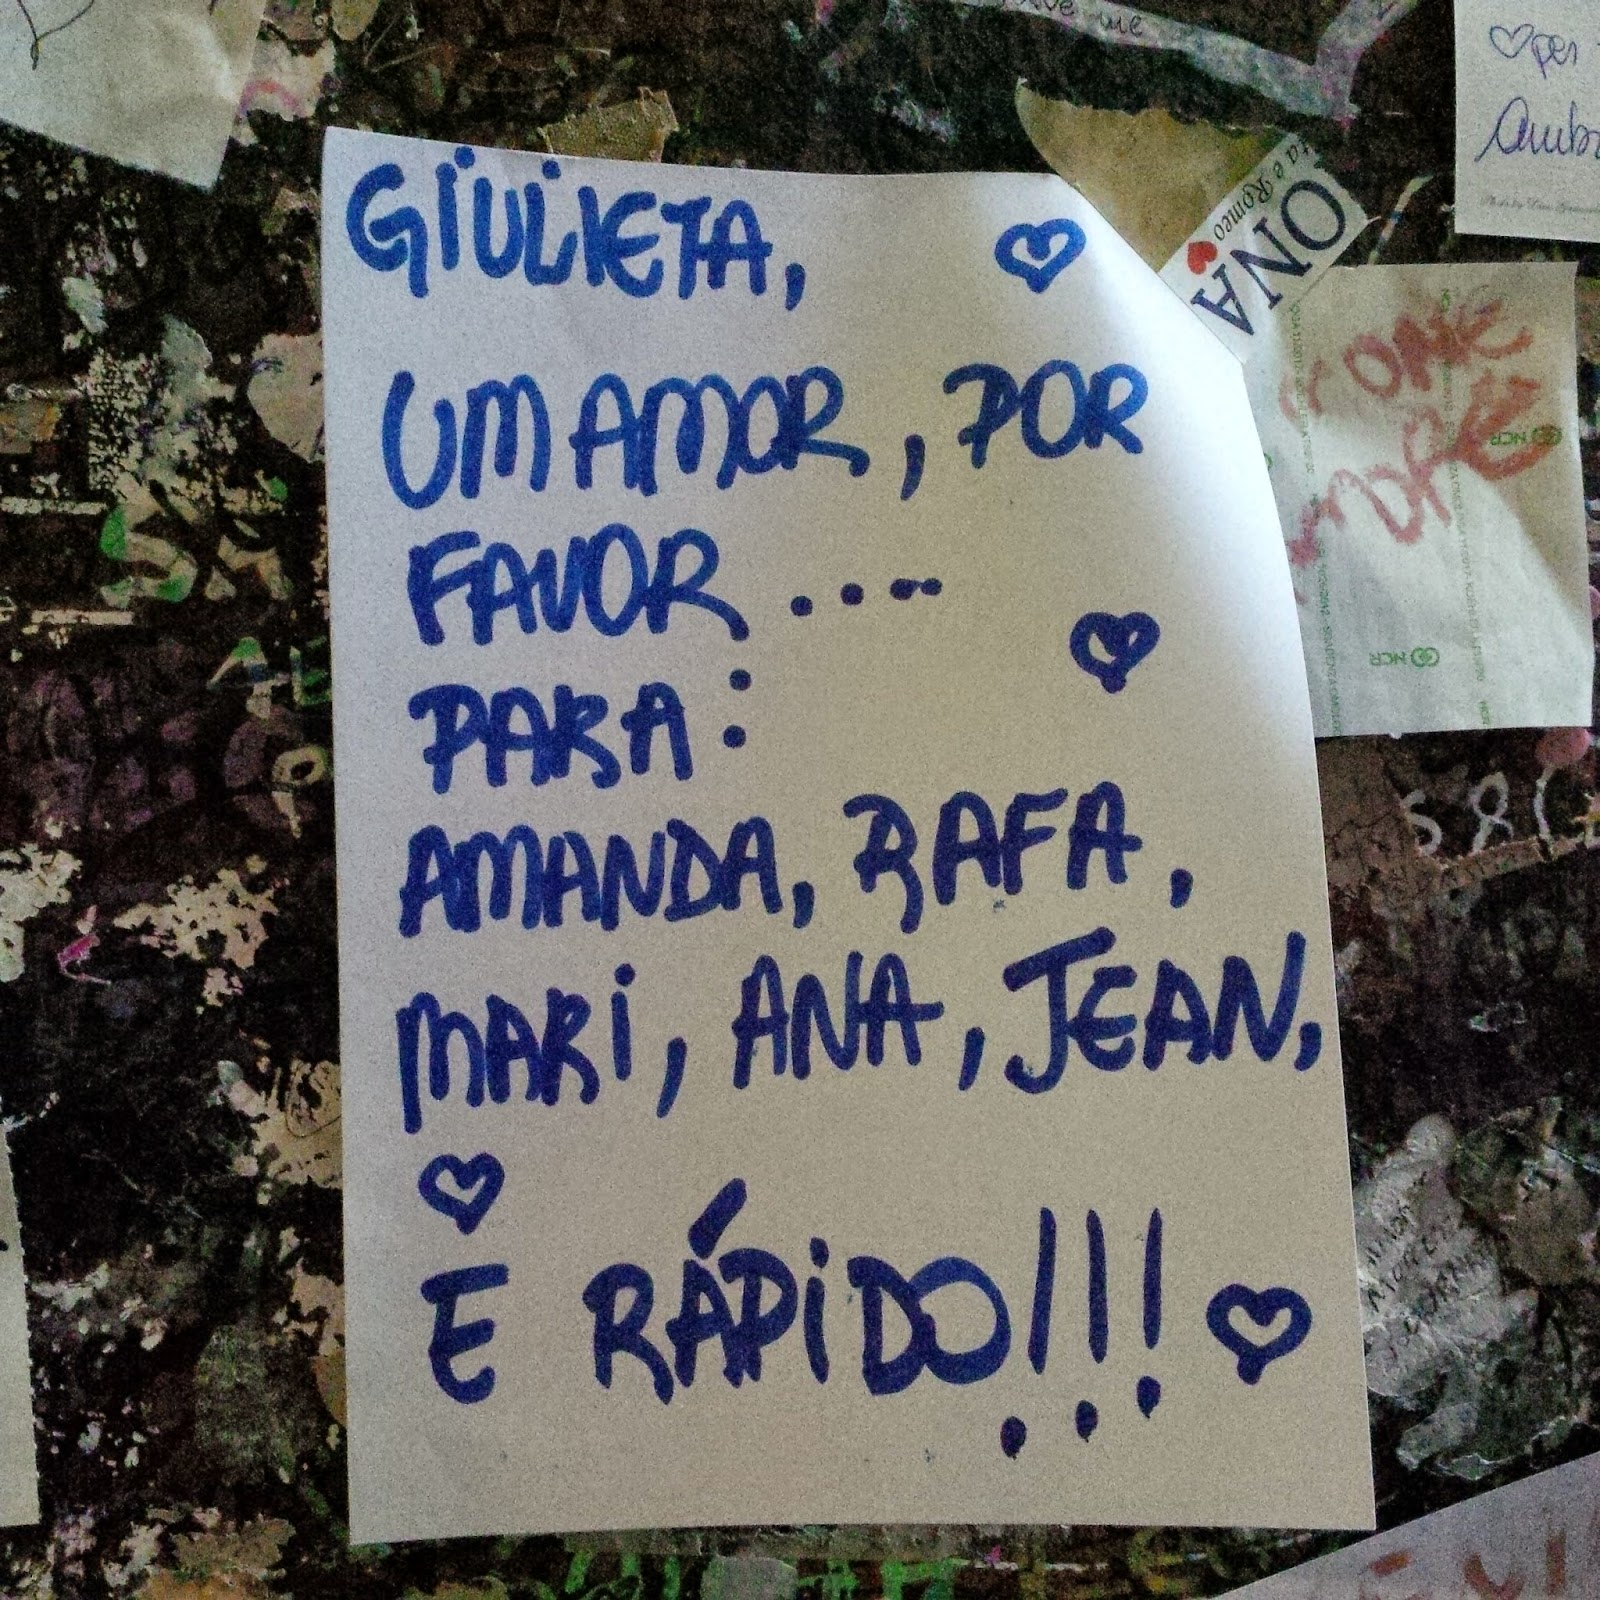 A note affixed to the wall in Juliet's House in Verona